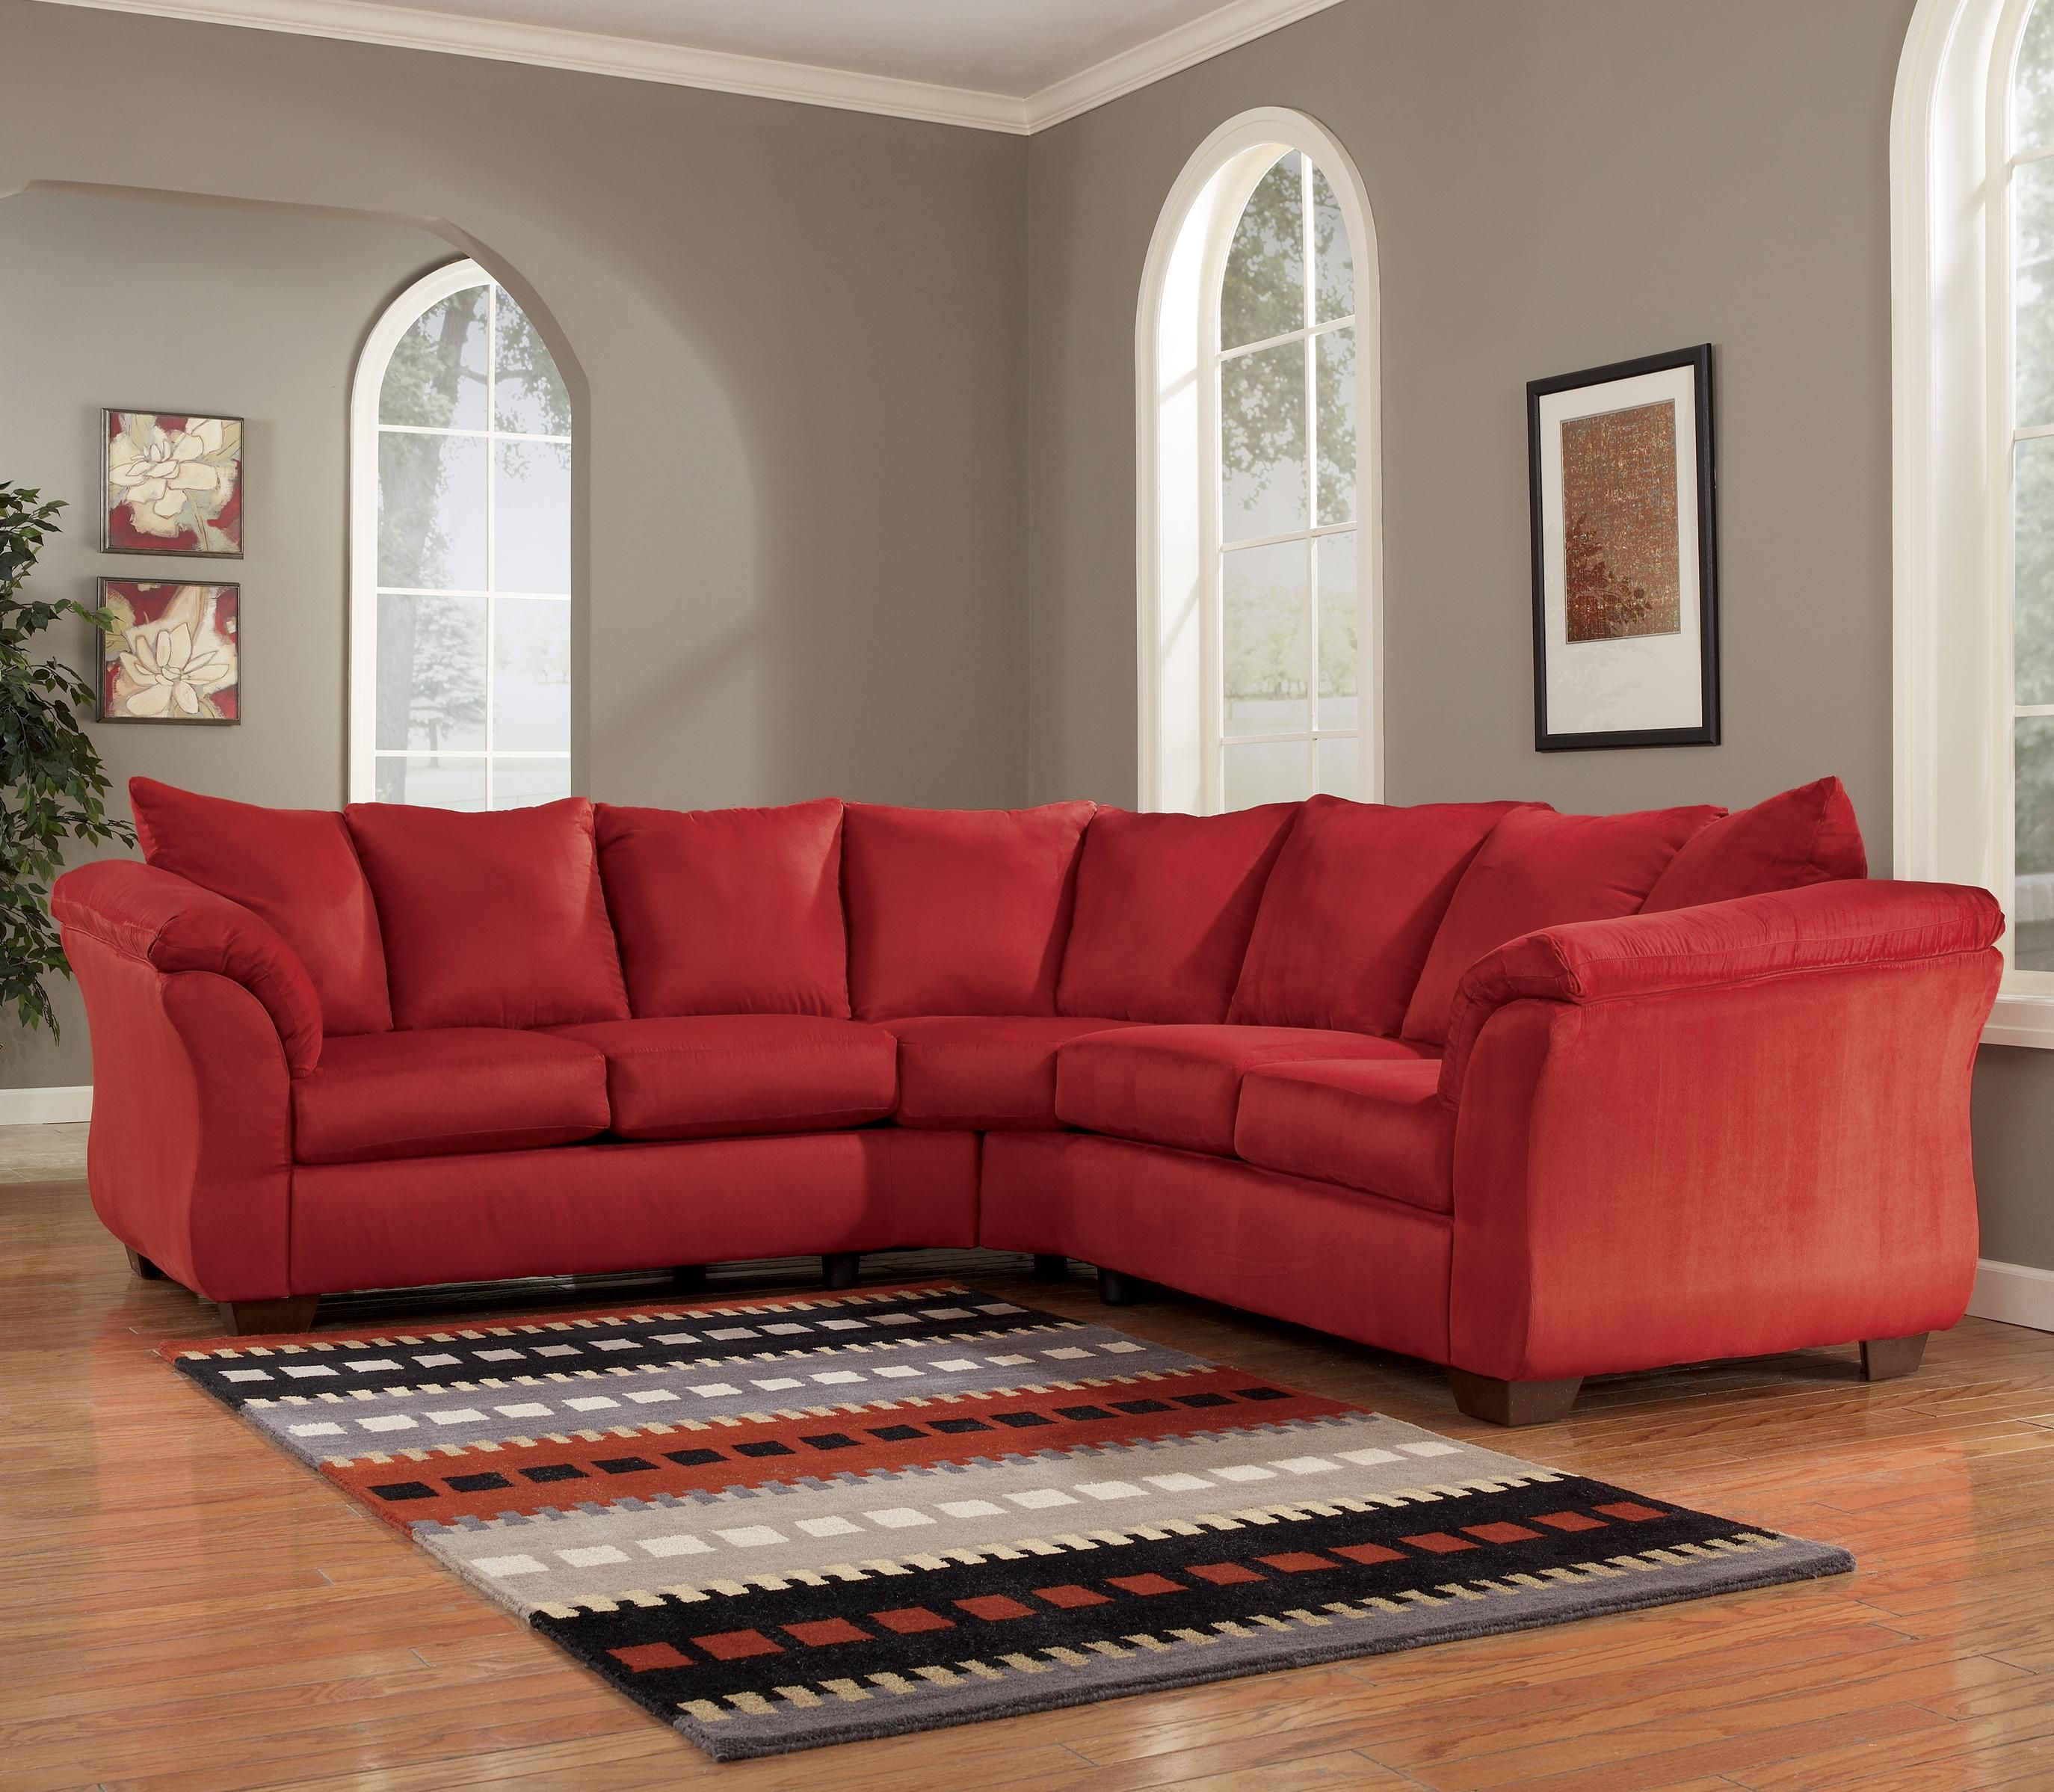 on hot right handed red this is modern made sofa in your up for of stylish sofas sectional leather chaise a mesmerizing